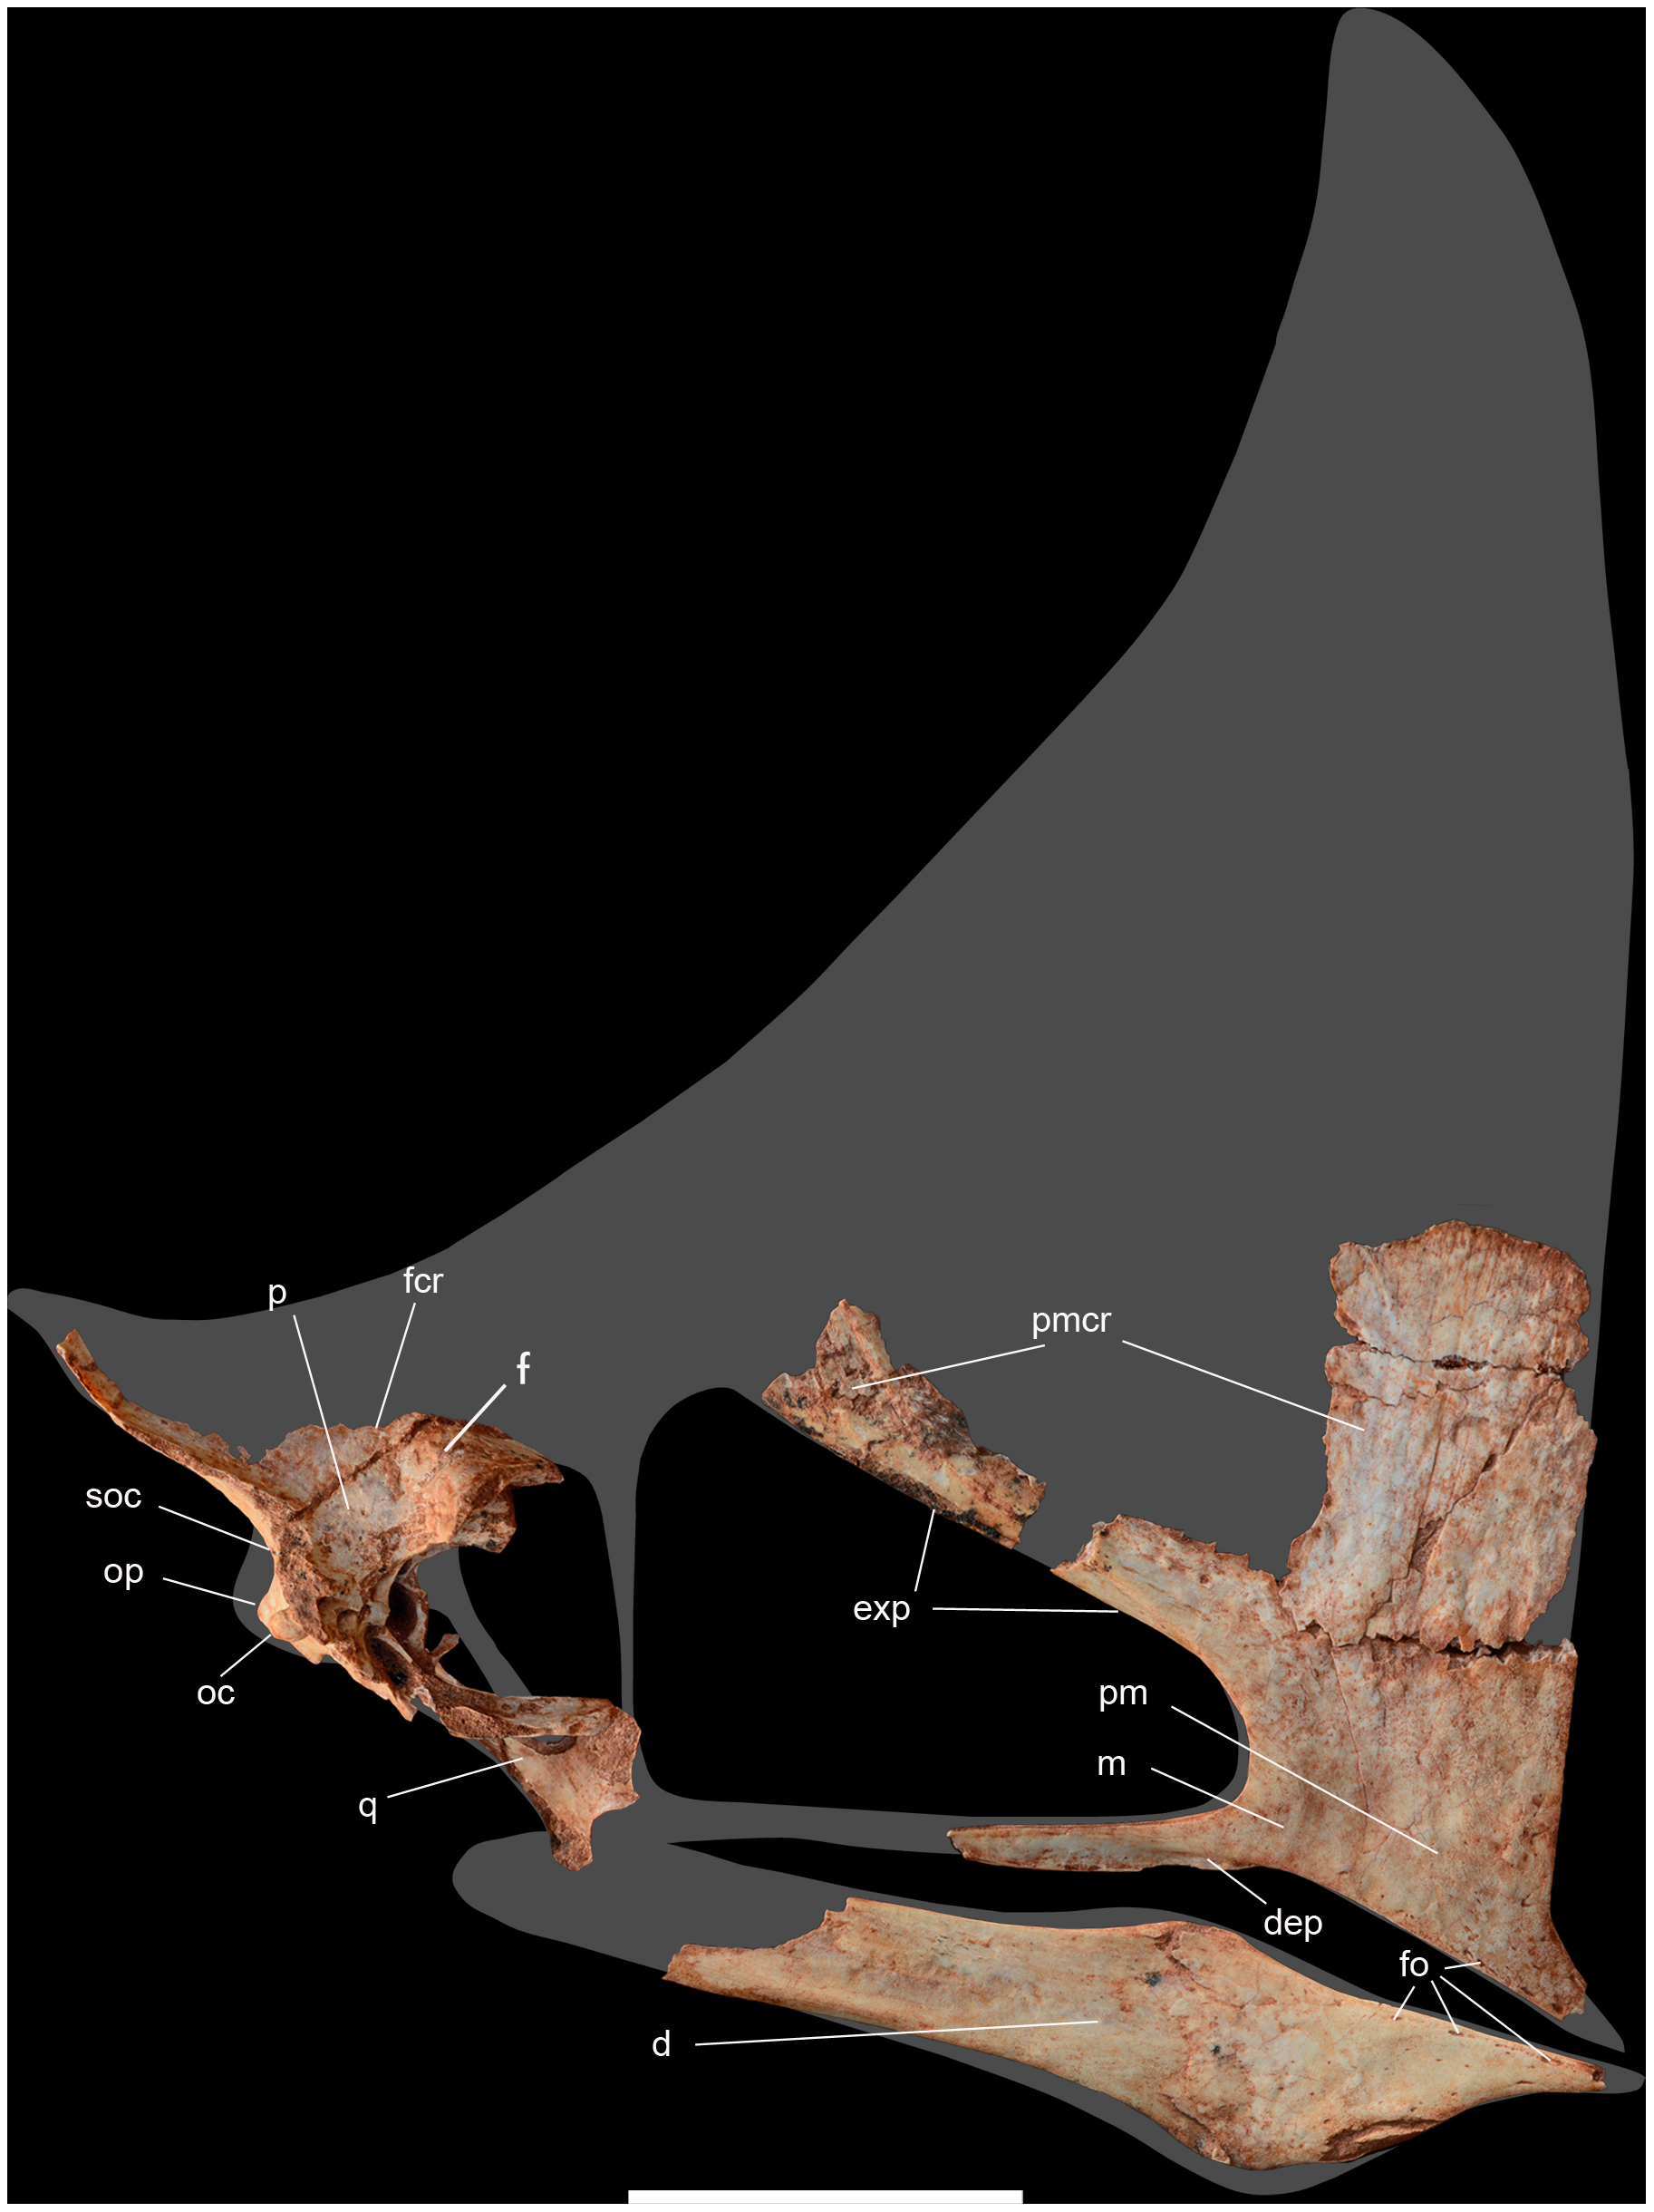 Skull of an adult Caiuajara dobruskii specimen.Image Source: Manzig PC, Kellner AWA, Weinschütz LC, Fragoso CE, Vega CS, et al. (2014) Discovery of a Rare Pterosaur Bone Bed in a Cretaceous Desert with Insights on Ontogeny and Behavior of Flying Reptiles. PLoS ONE 9(8): e100005. doi:10.1371/journal.pone.0100005